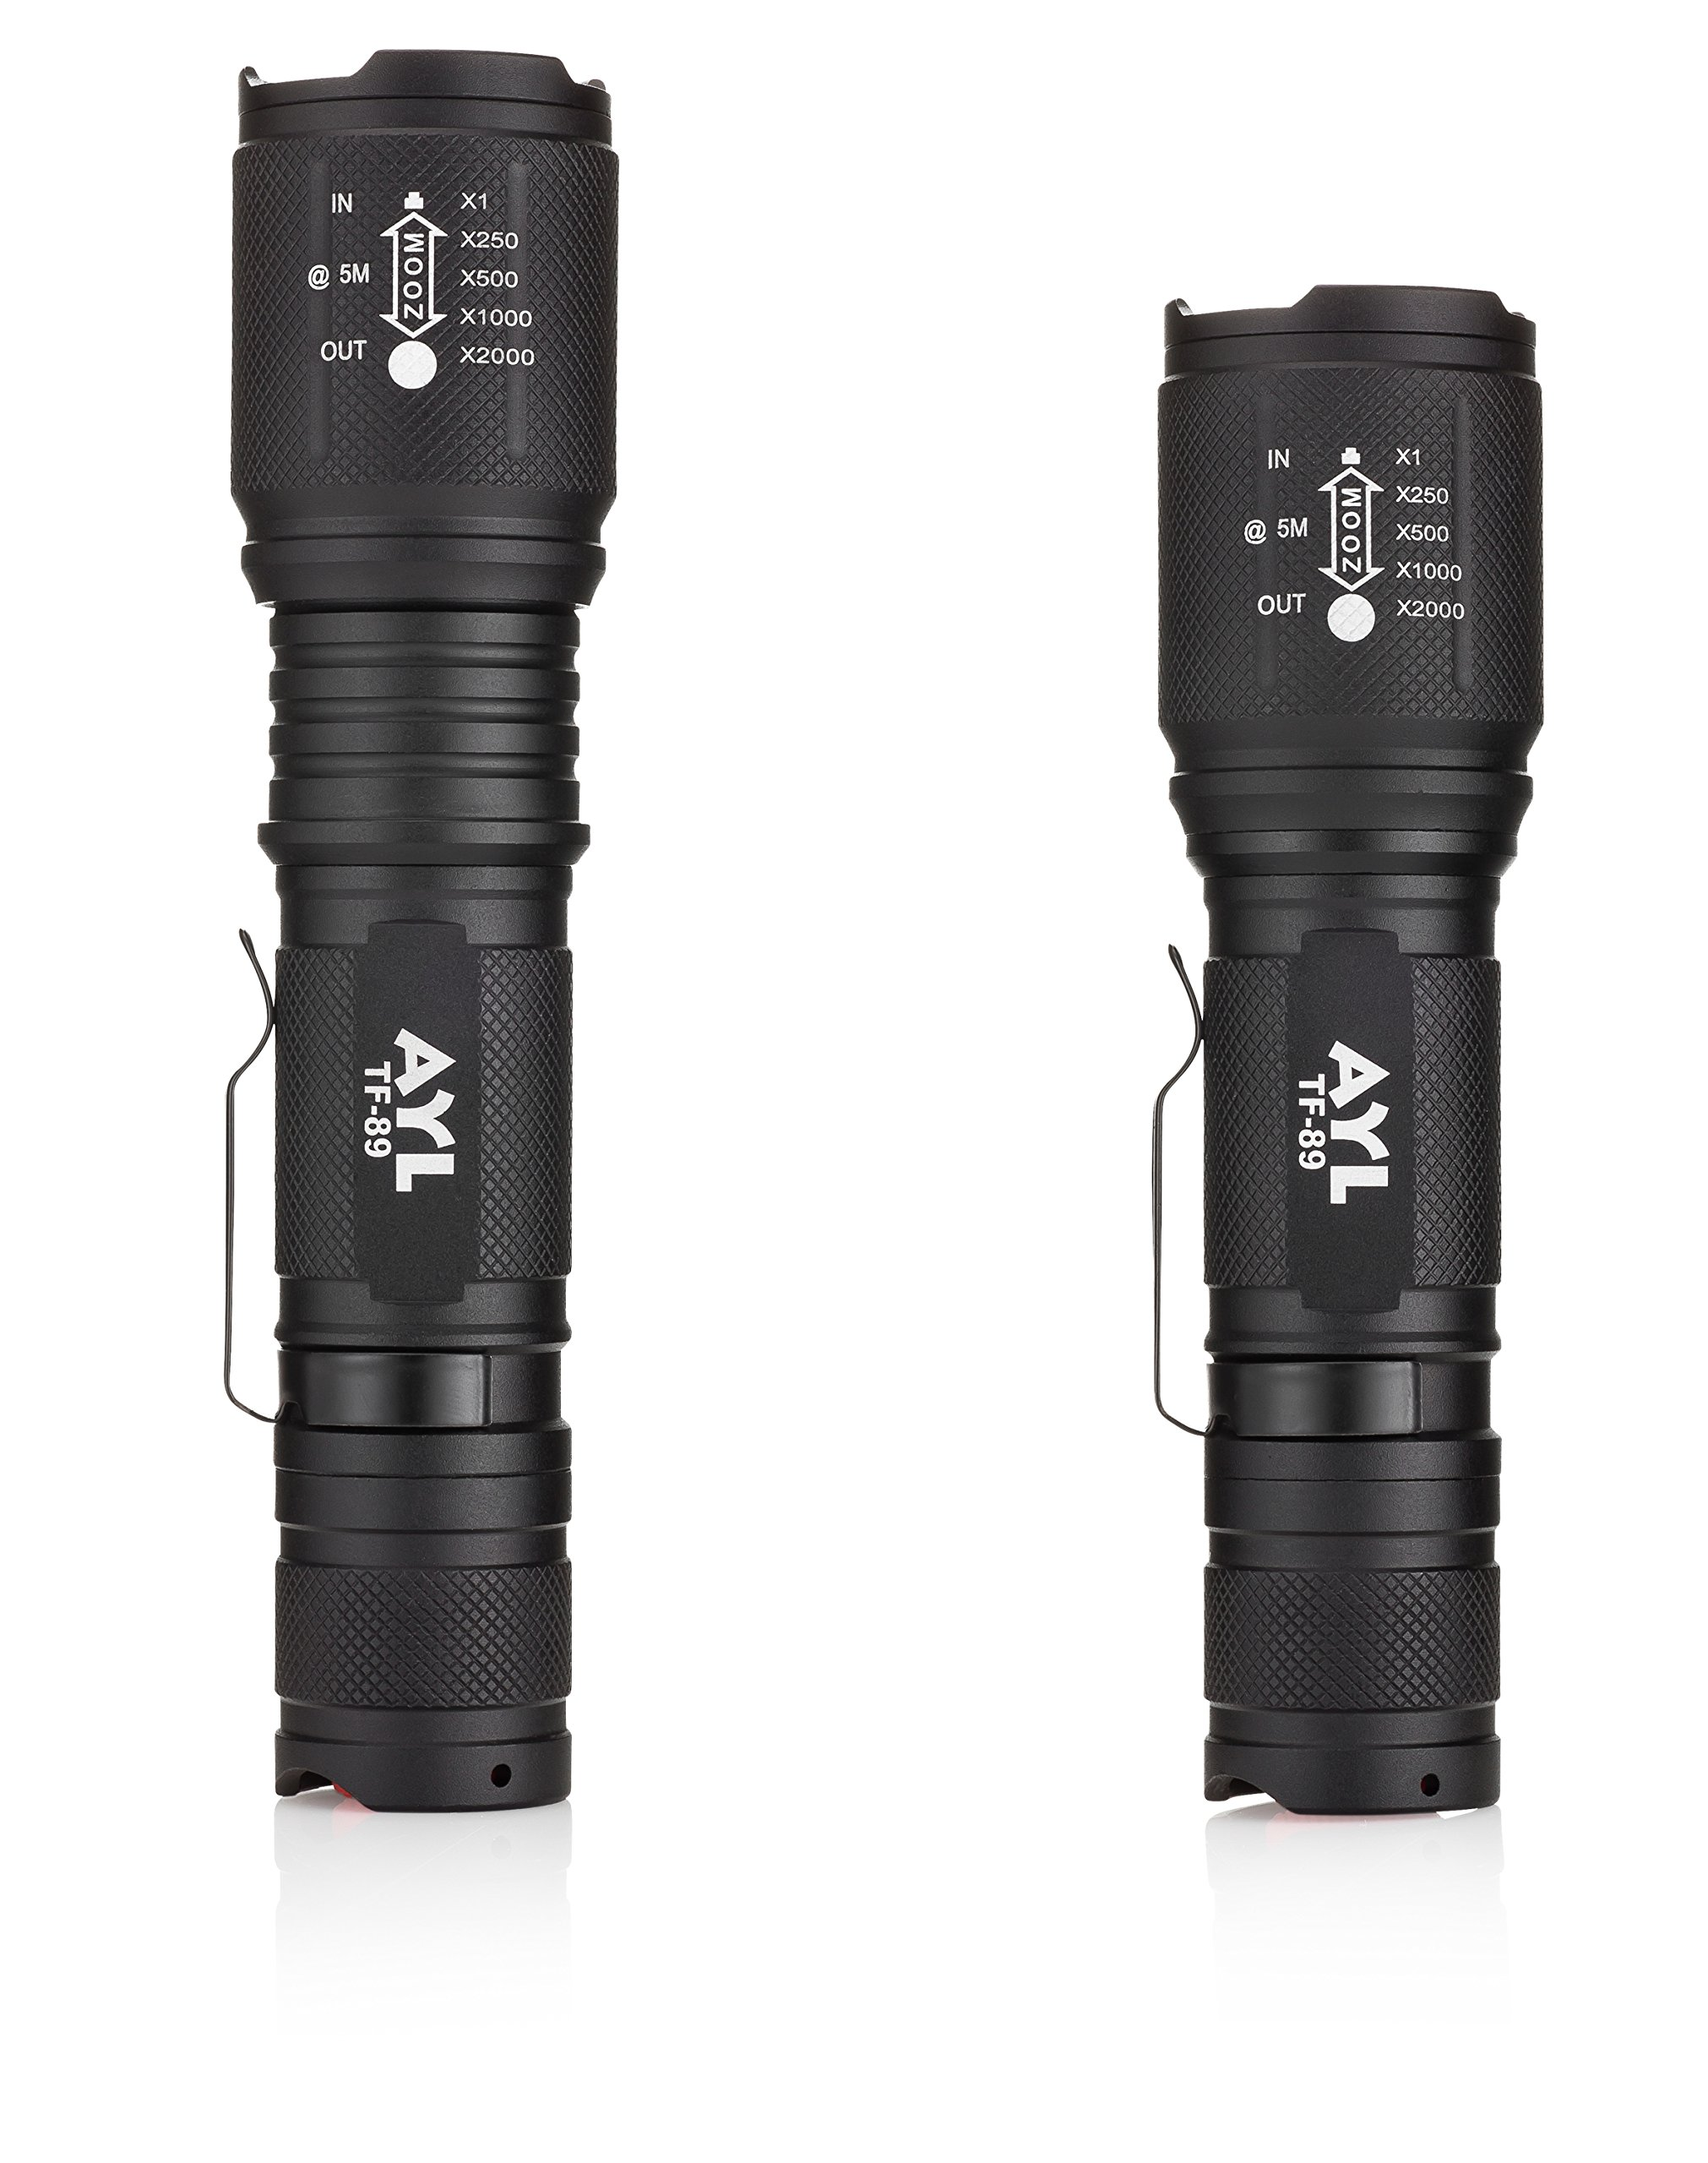 AYL LED Flashlight Tactical Flashlight - [2 Pack] 1000 High Lumens CREE Torch Light, Ultra Bright Emergency Handheld Flashlights by AYL (Image #5)